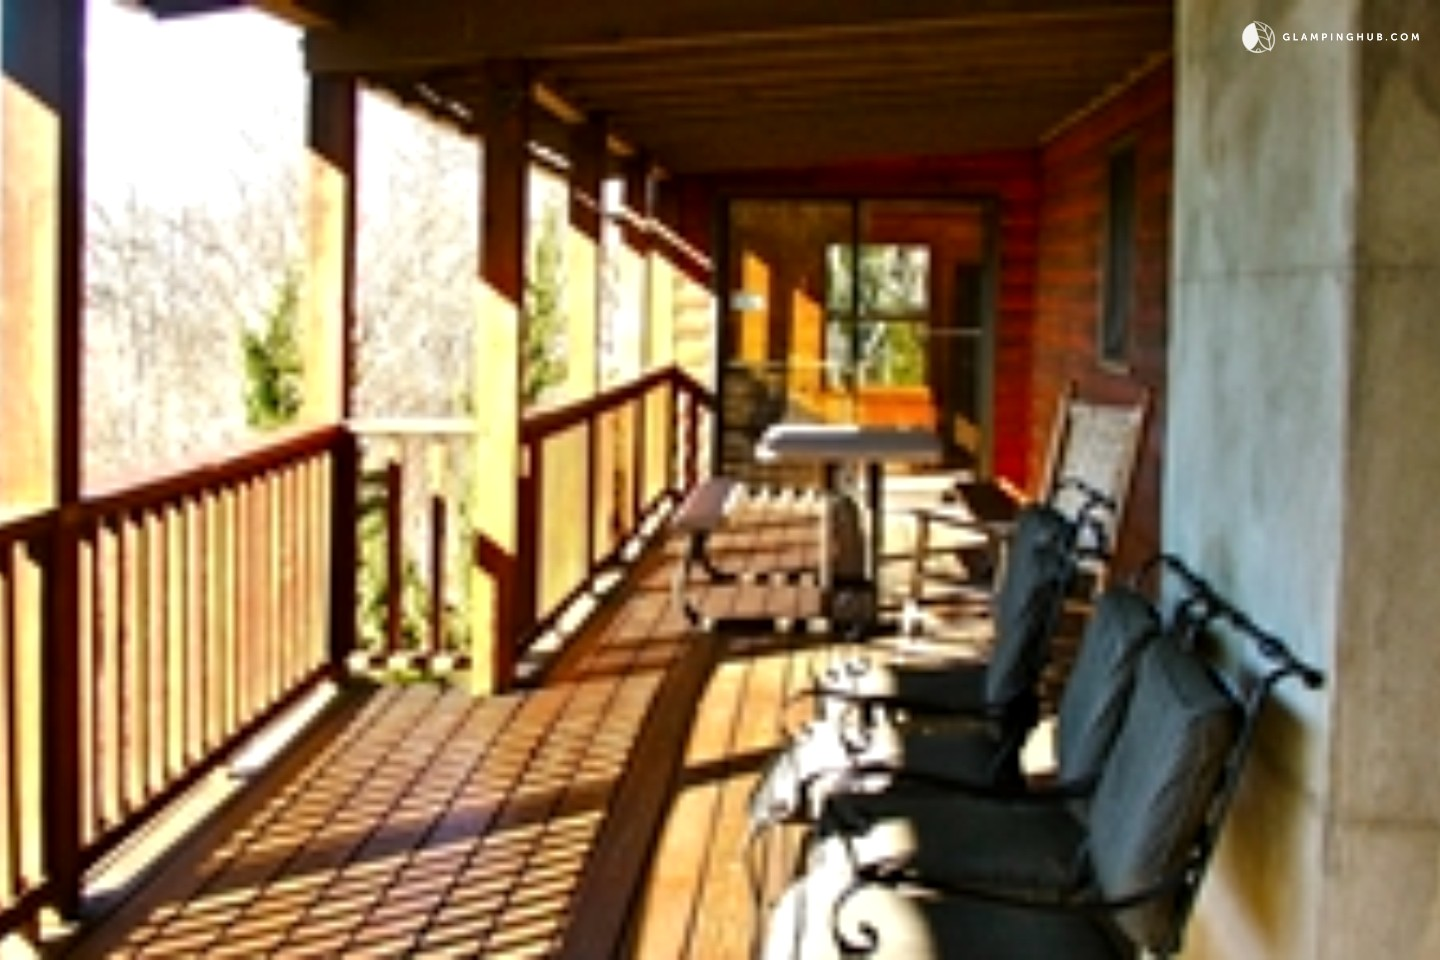 Cabin rental in asheville north carolina for Asheville area cabin rentals